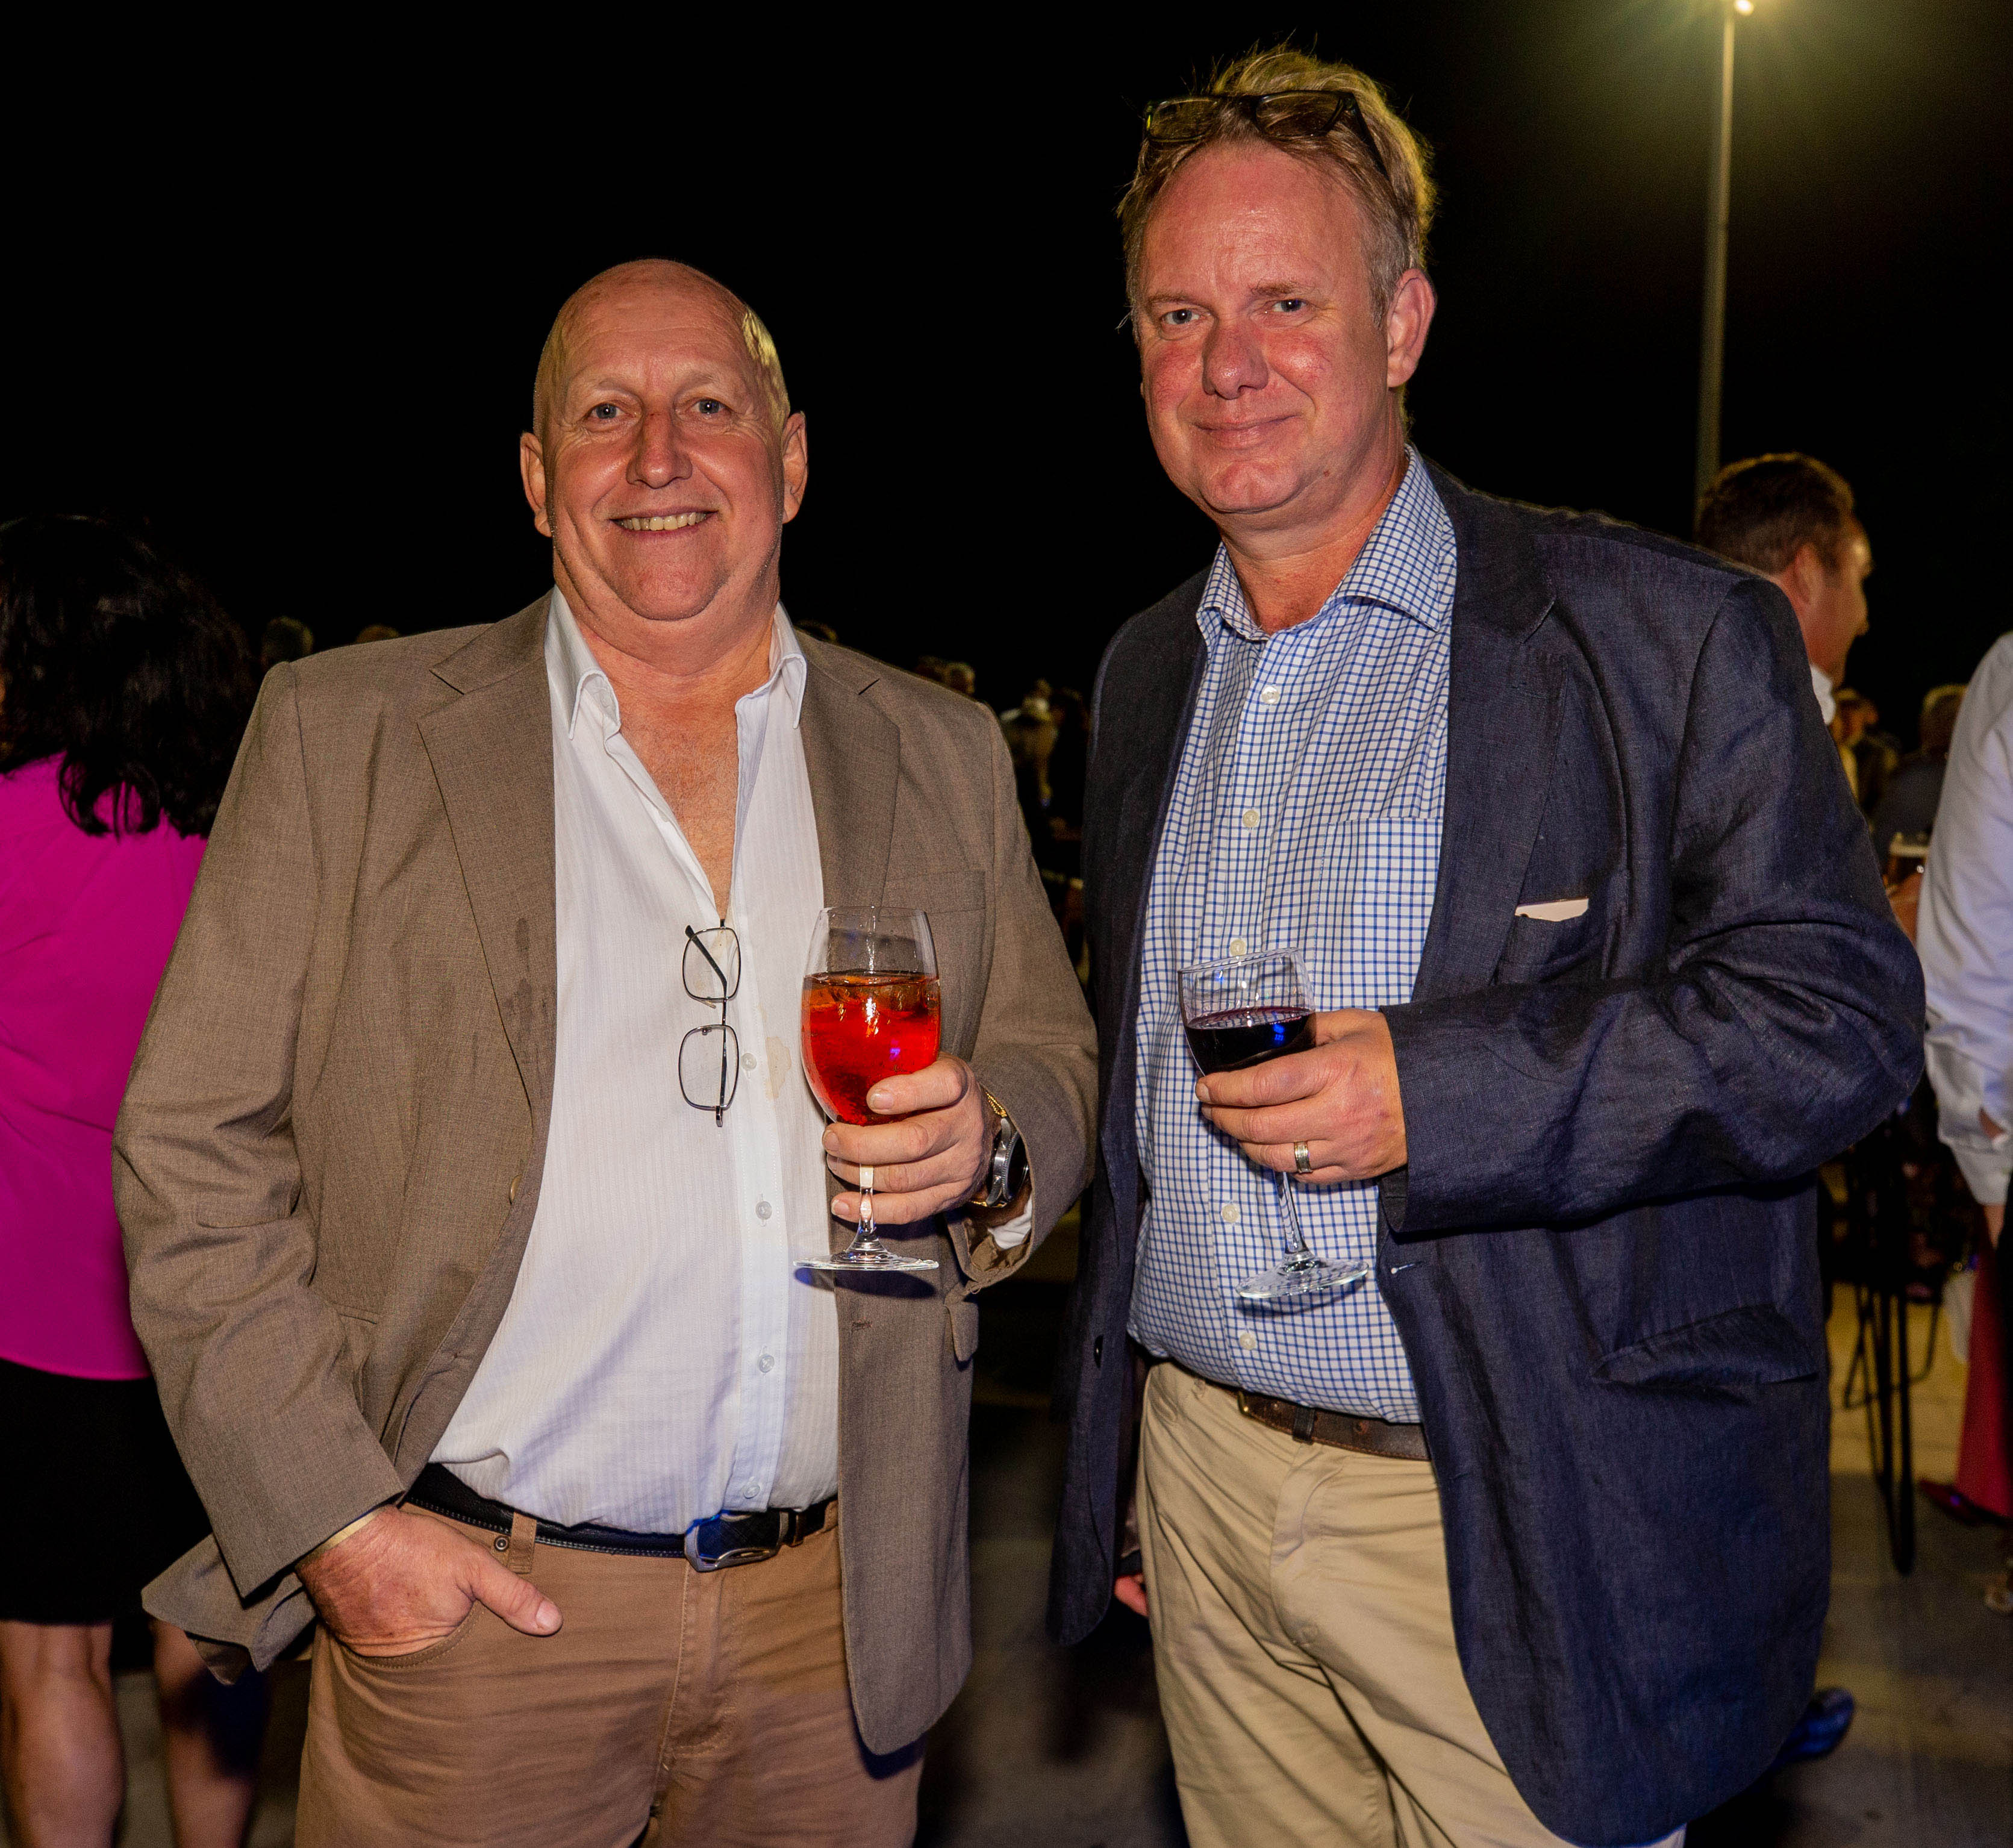 Industry at the Australian Superyacht Rendezvous 2018